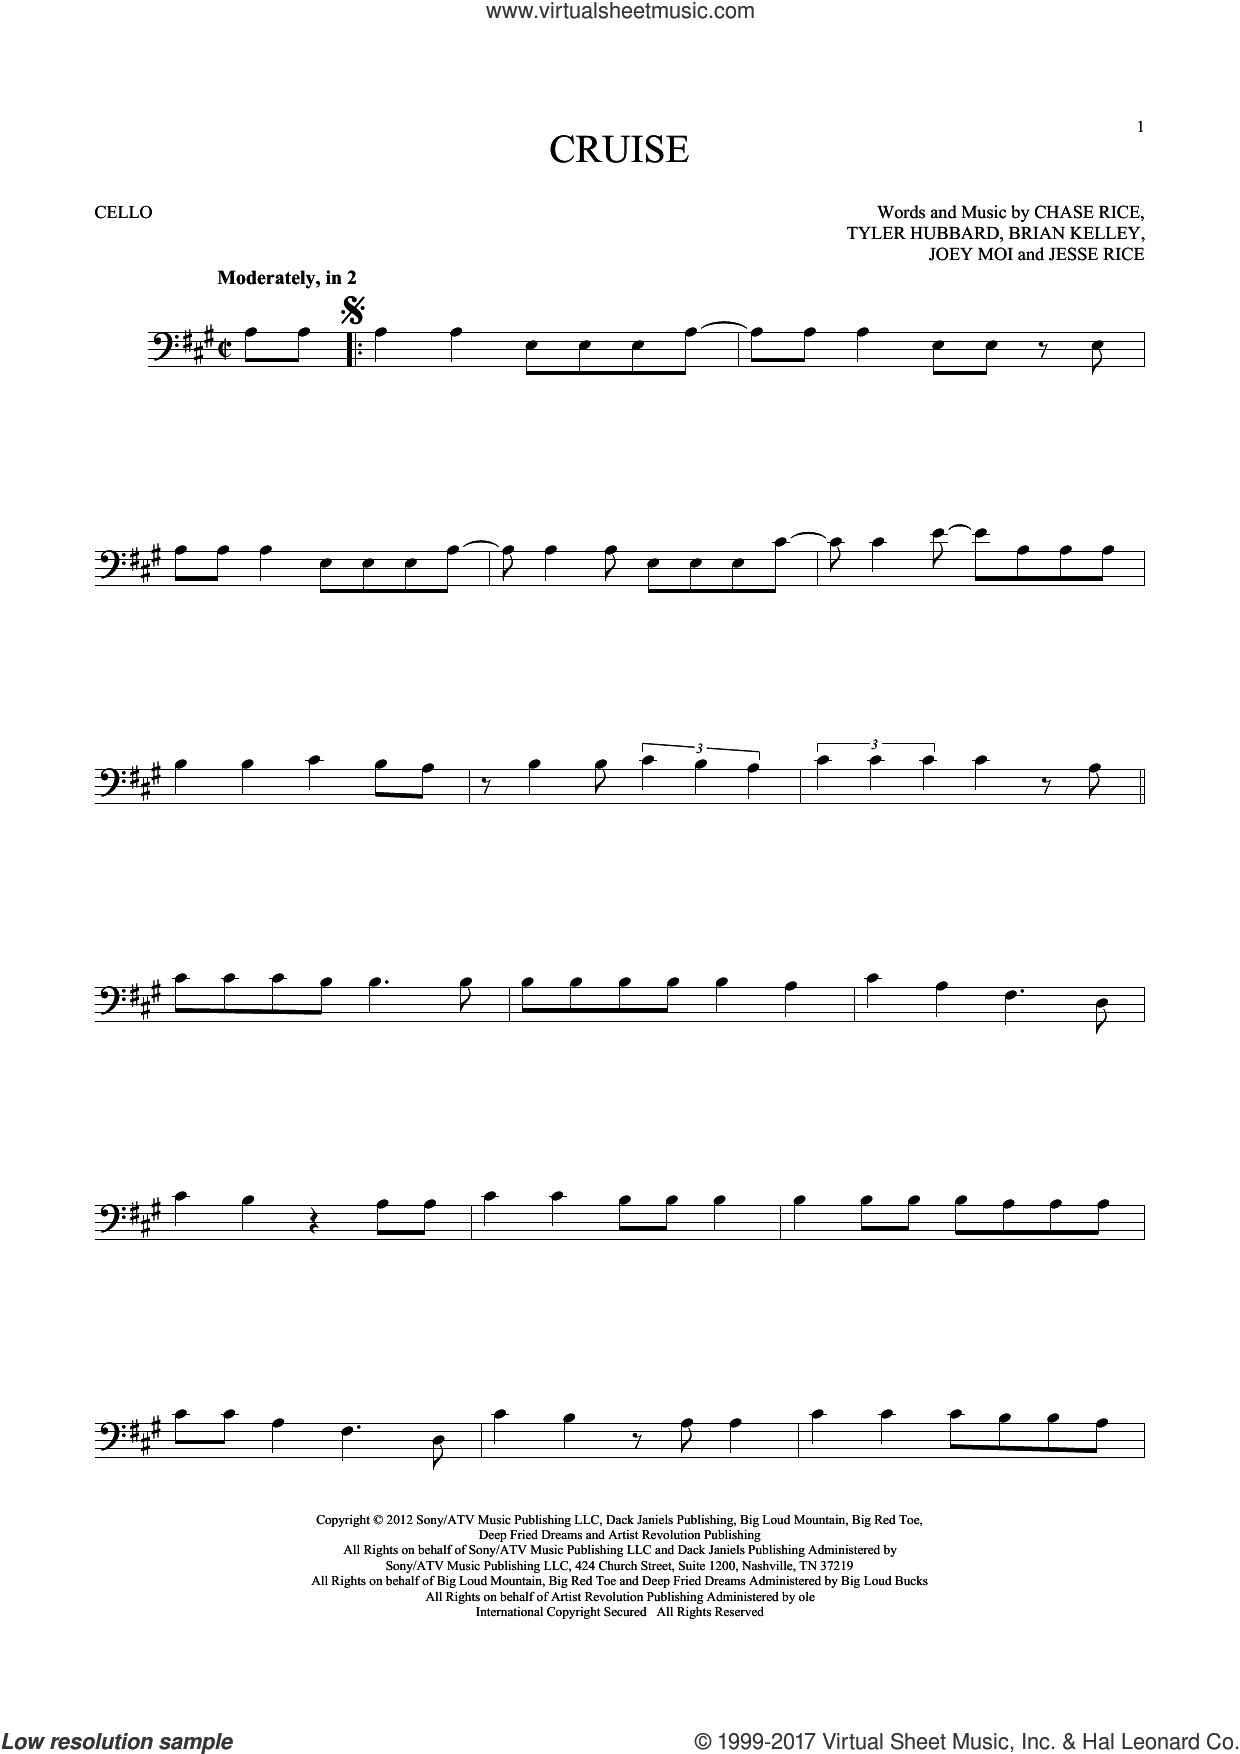 Cruise sheet music for cello solo by Florida Georgia Line, Brian Kelley, Chase Rice, Jesse Rice, Joey Moi and Tyler Hubbard, intermediate skill level